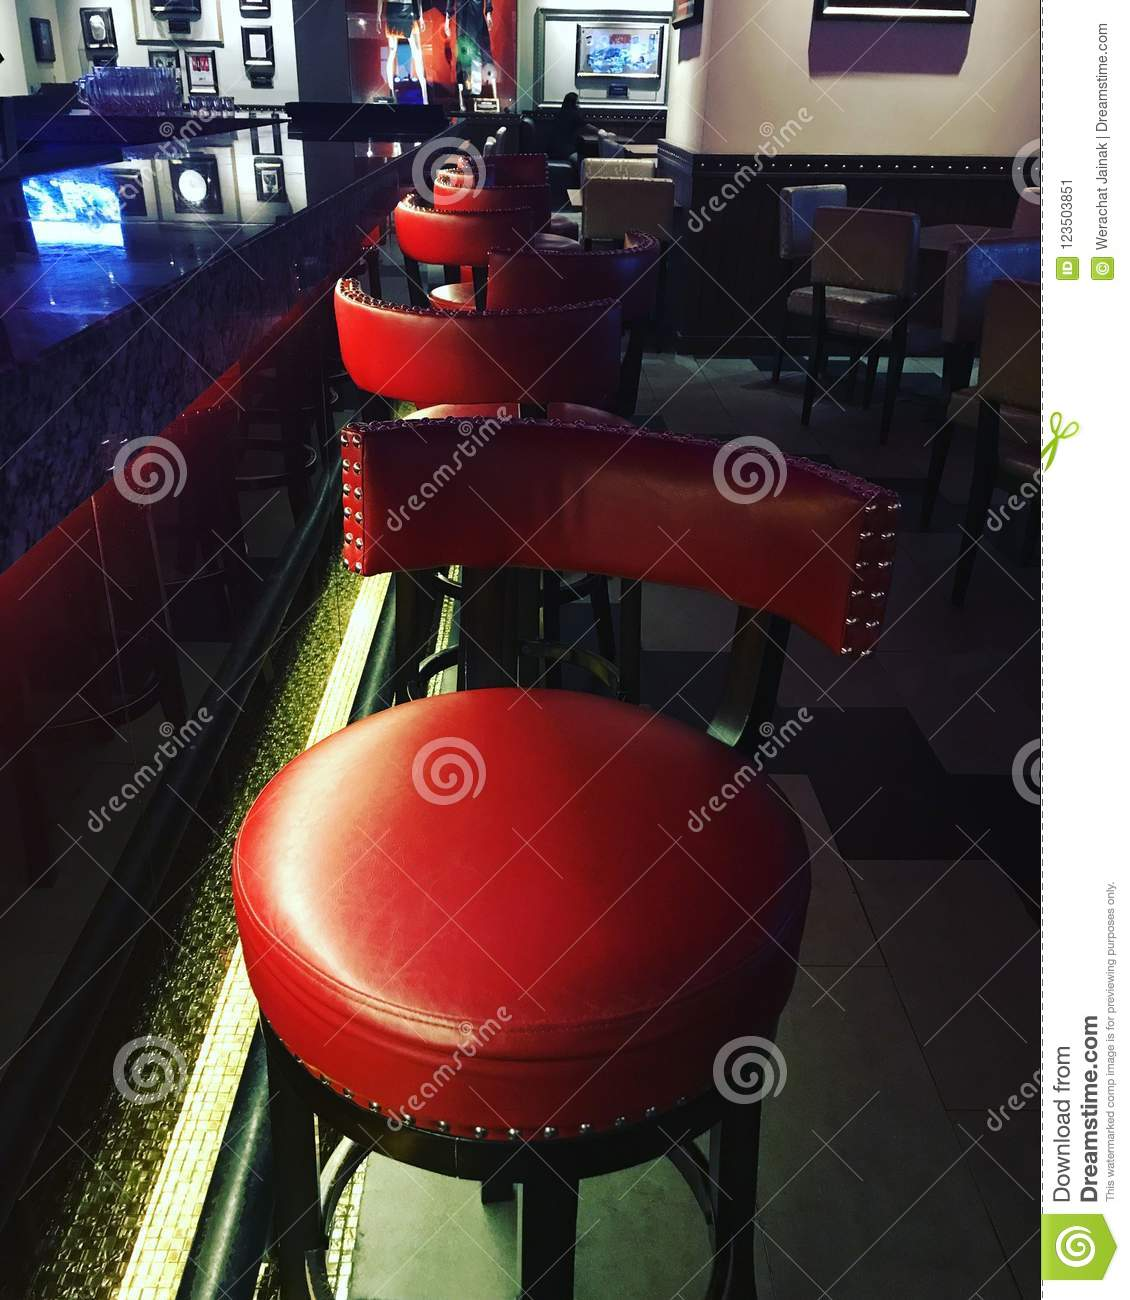 office chair yangon highwood adirondack red in the bar stock image of relaxation 123503851 myanmar